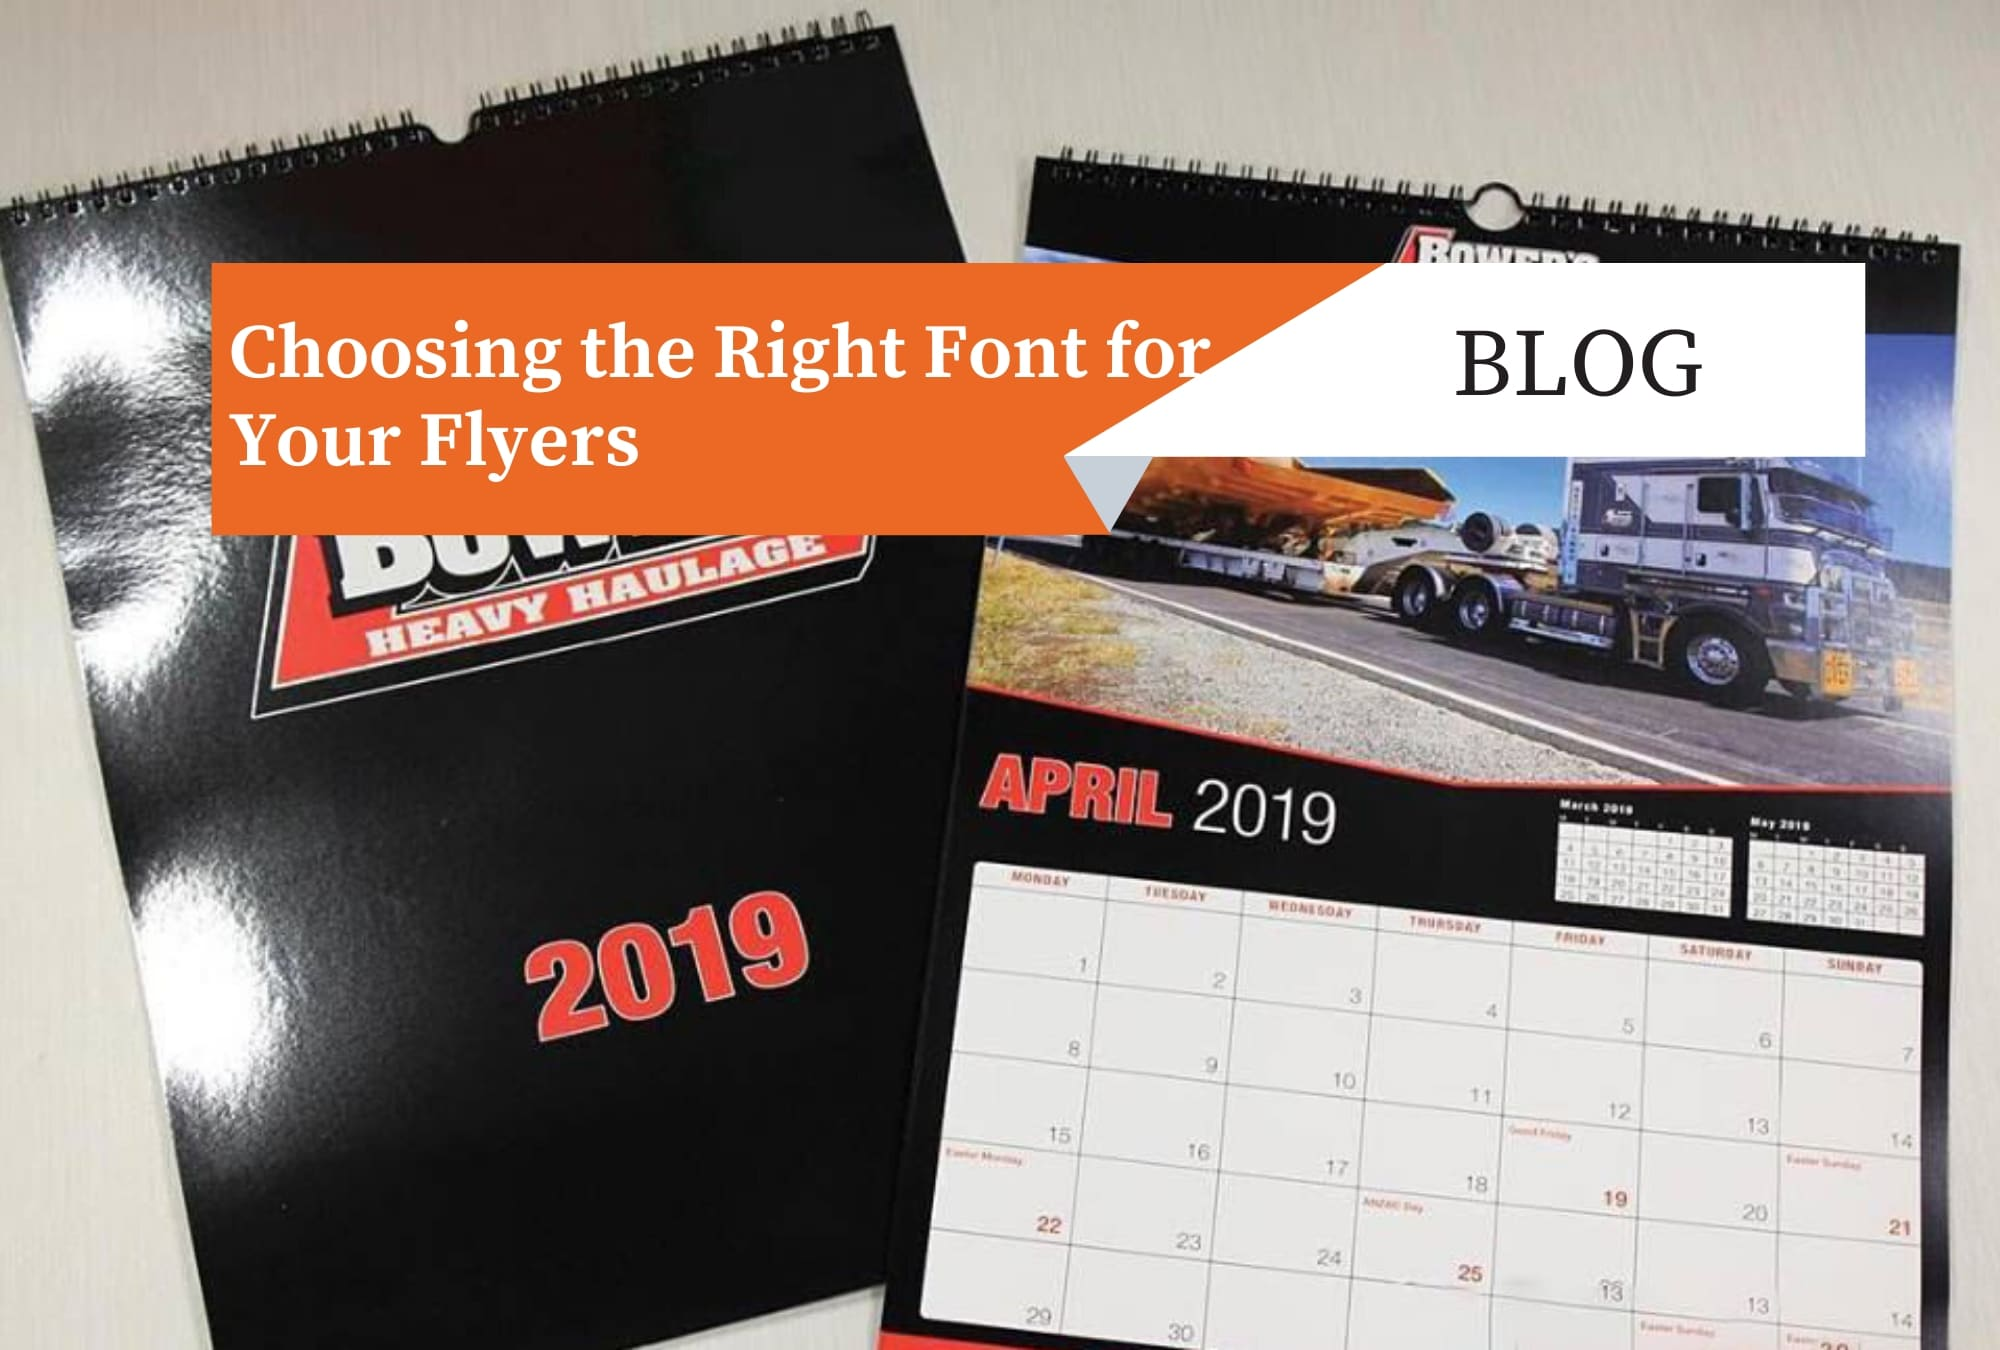 Choosing the Right Font for Your Flyers